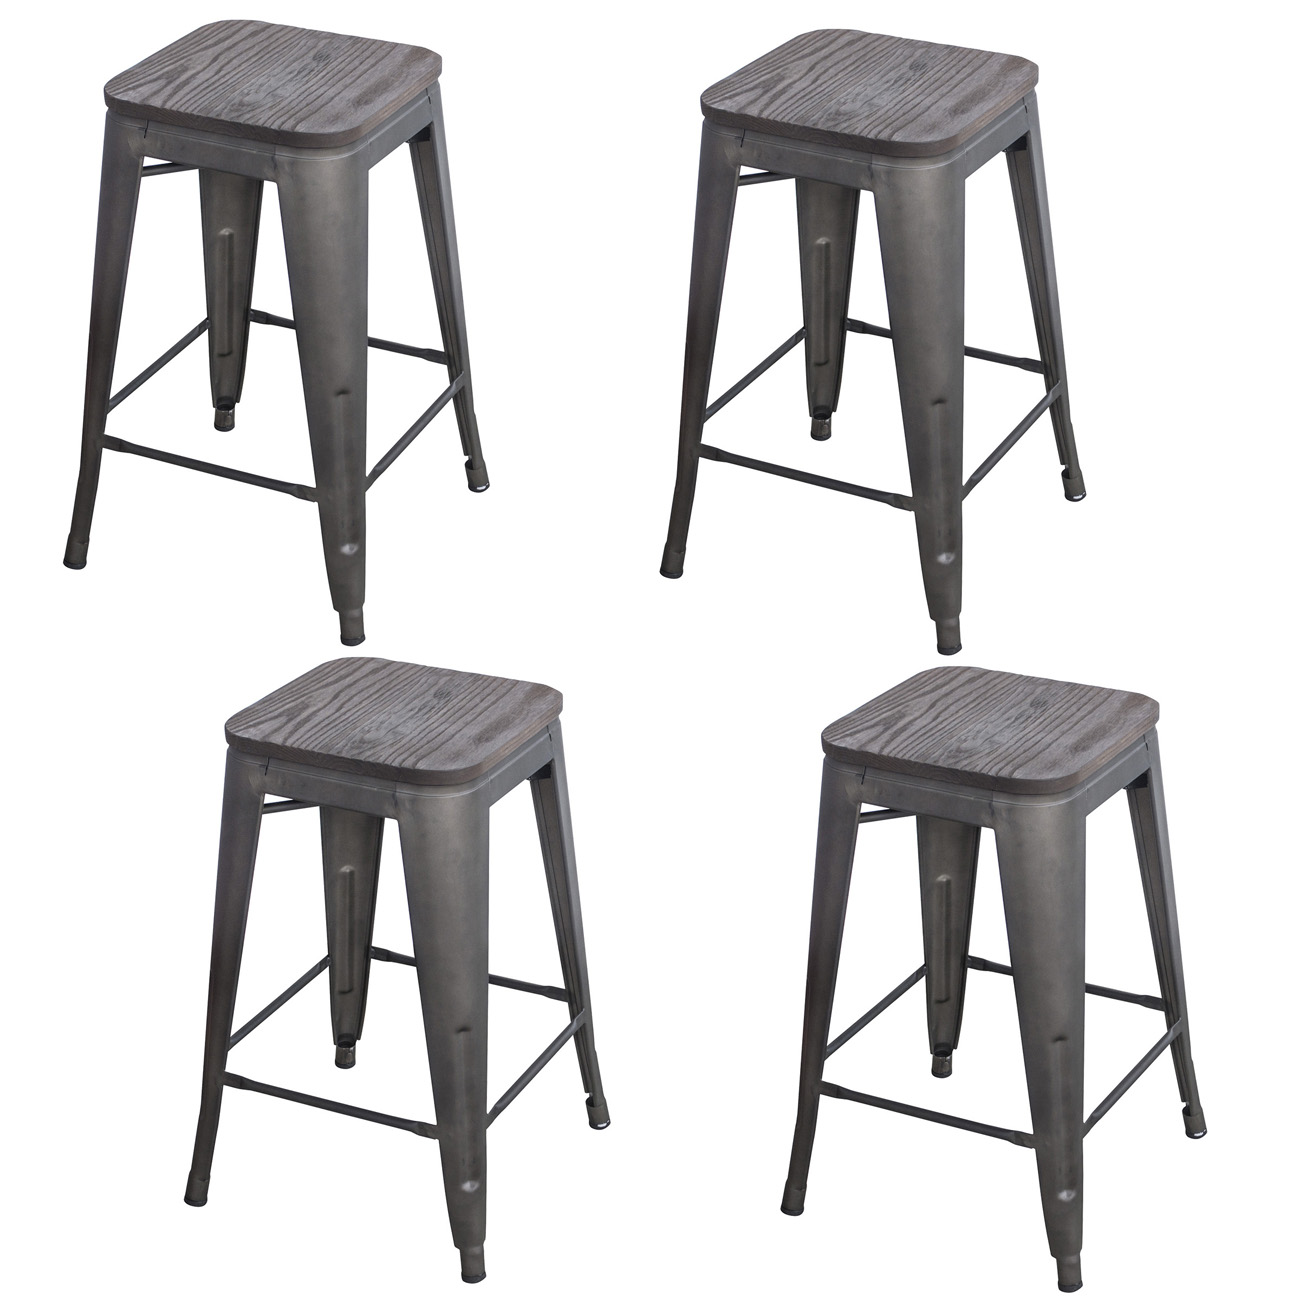 Black 24 in. Metal Bar Stool with Wood Seat- 4 Piece